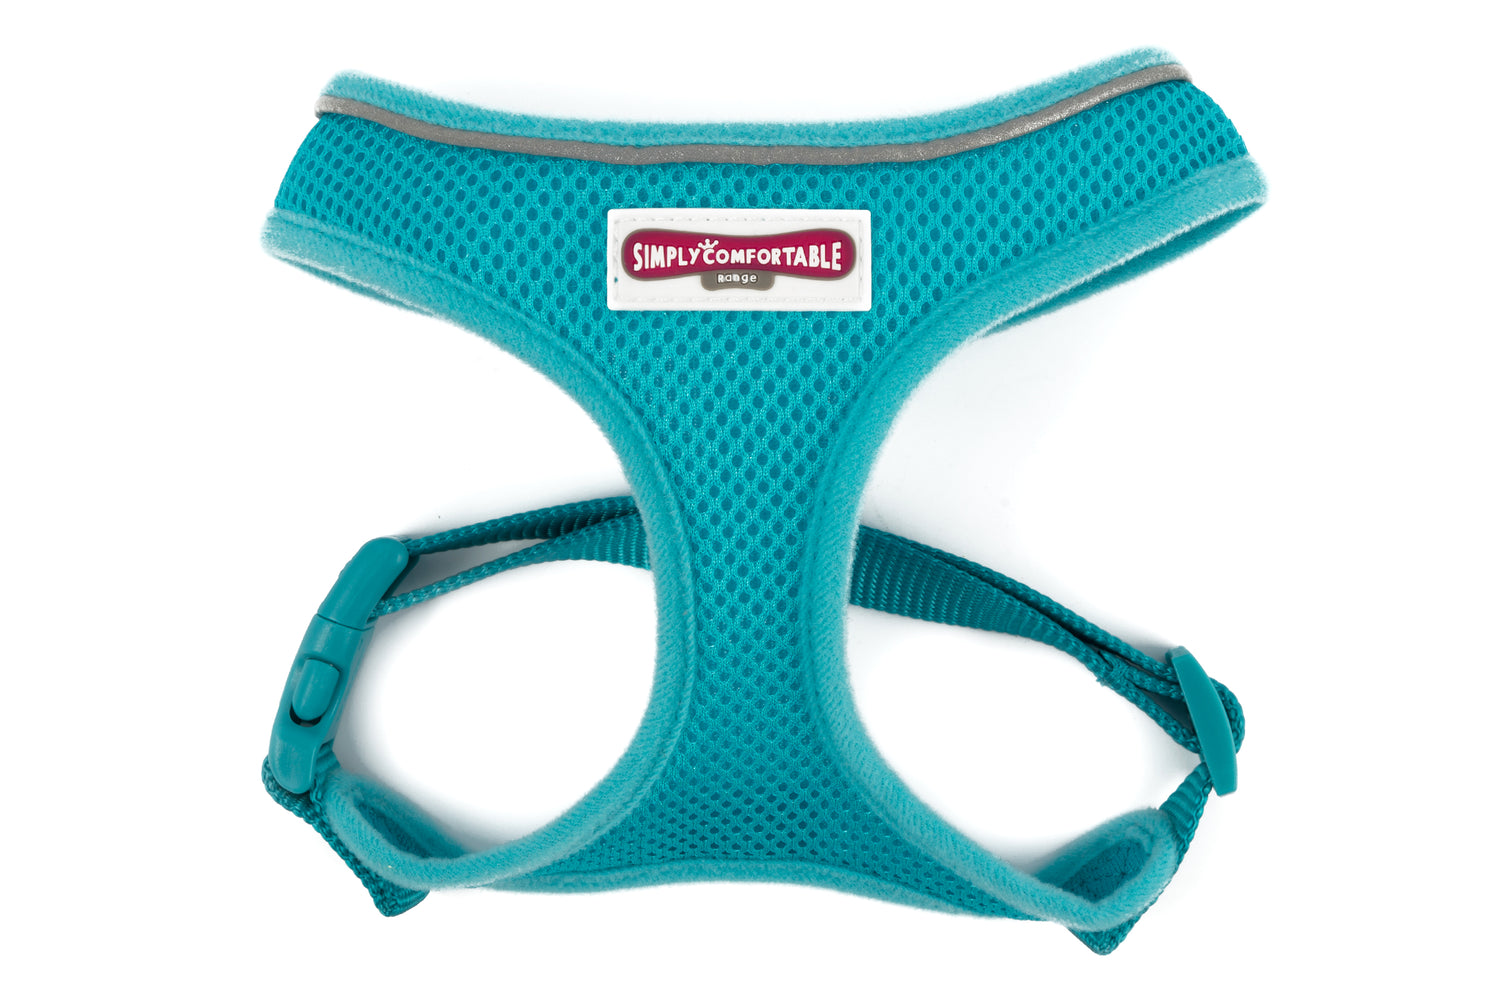 Mesh Dog Harness in Teal